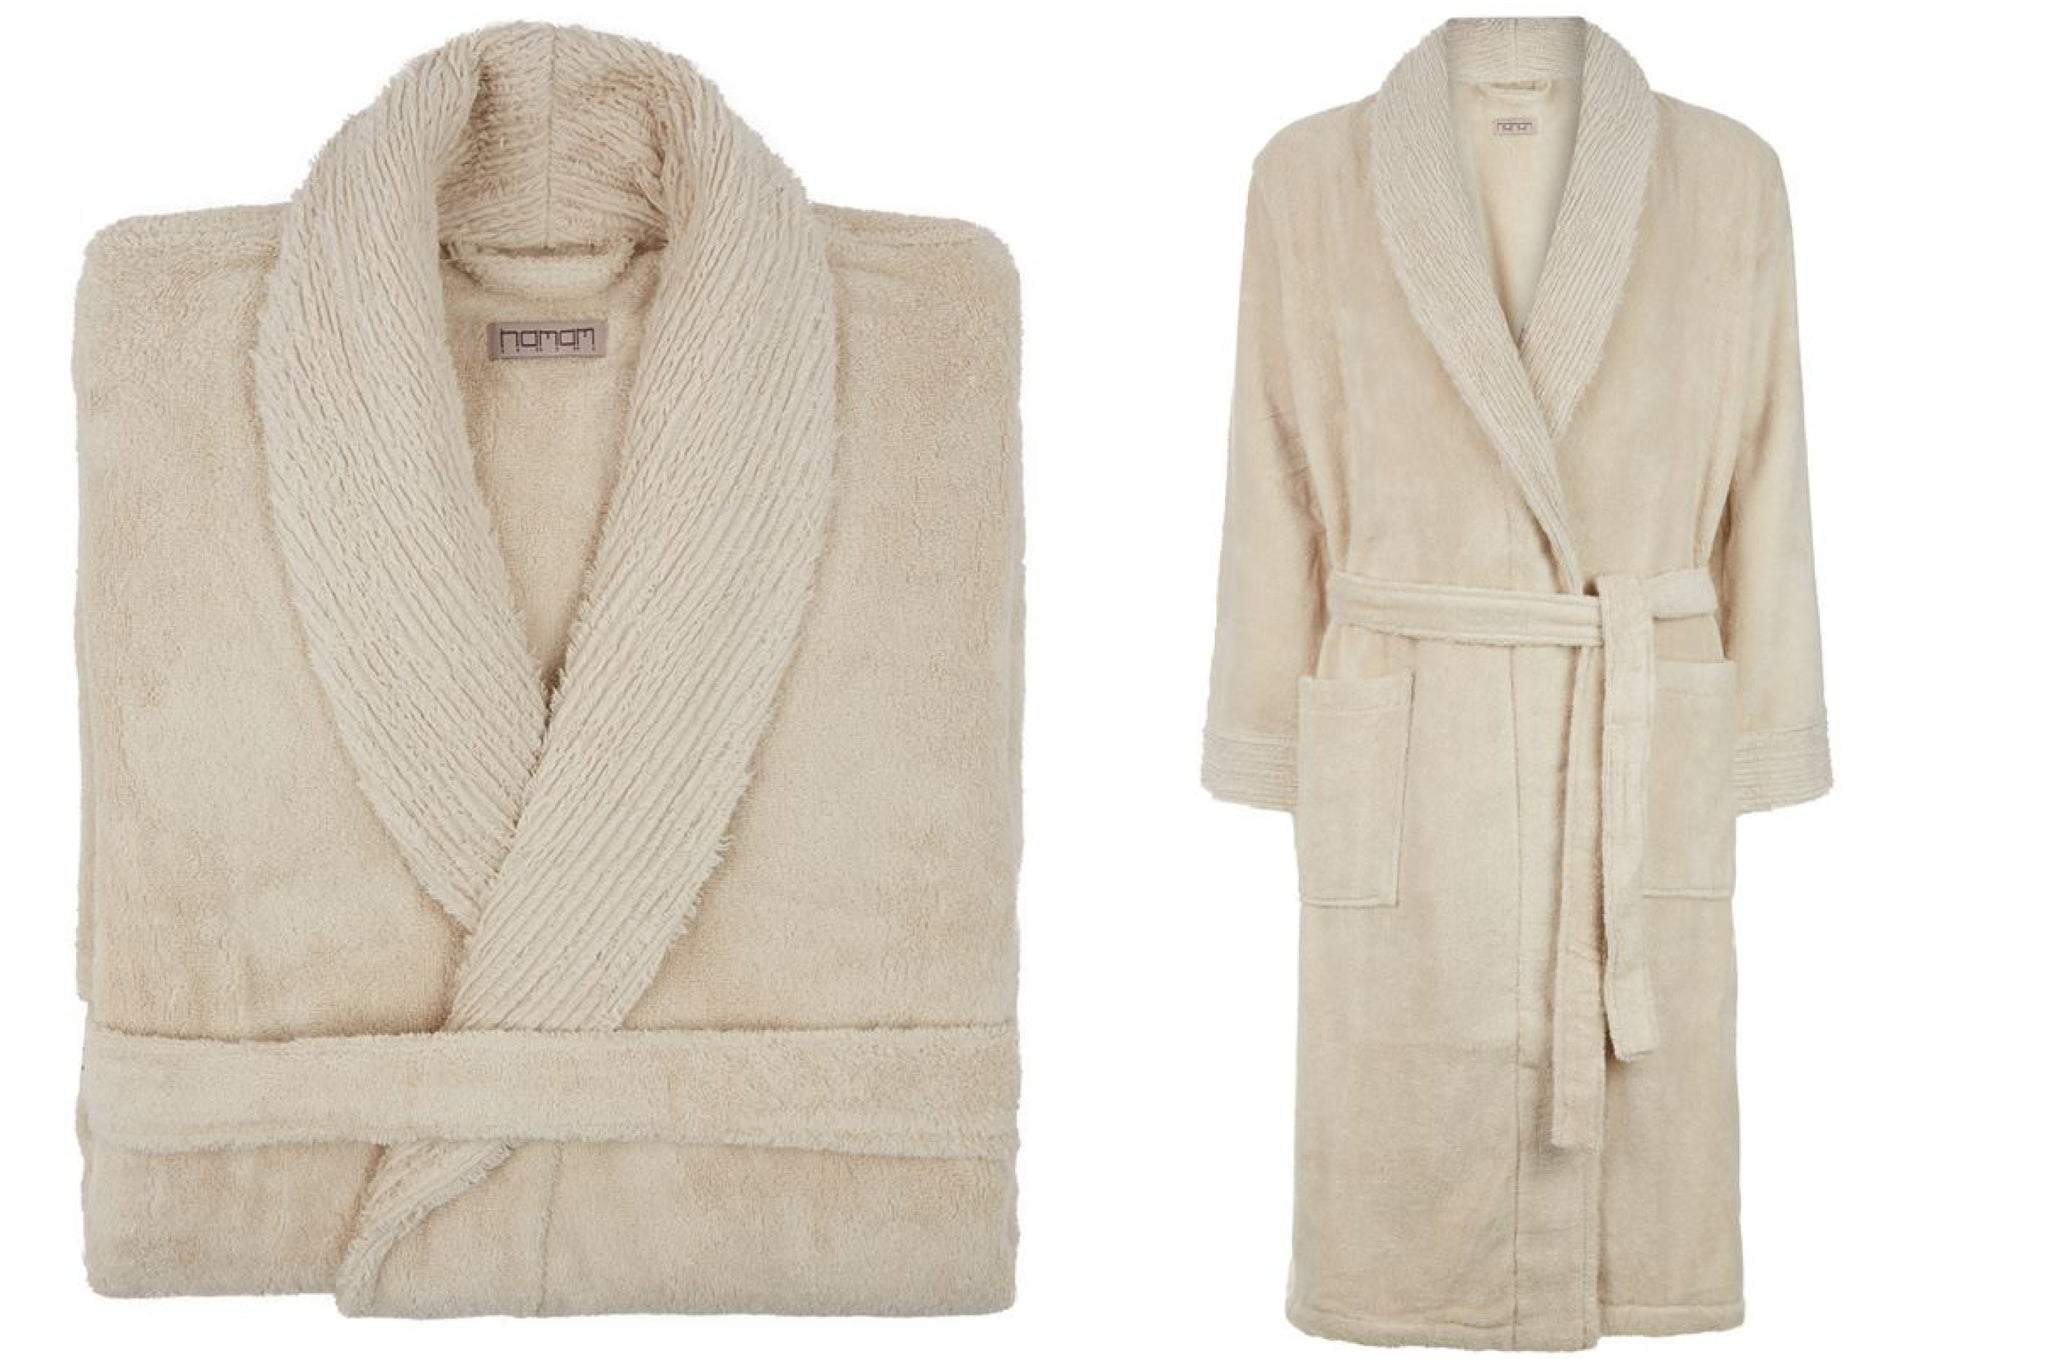 Gift Idea For a Workaholic – a Luxury Cotton Robe